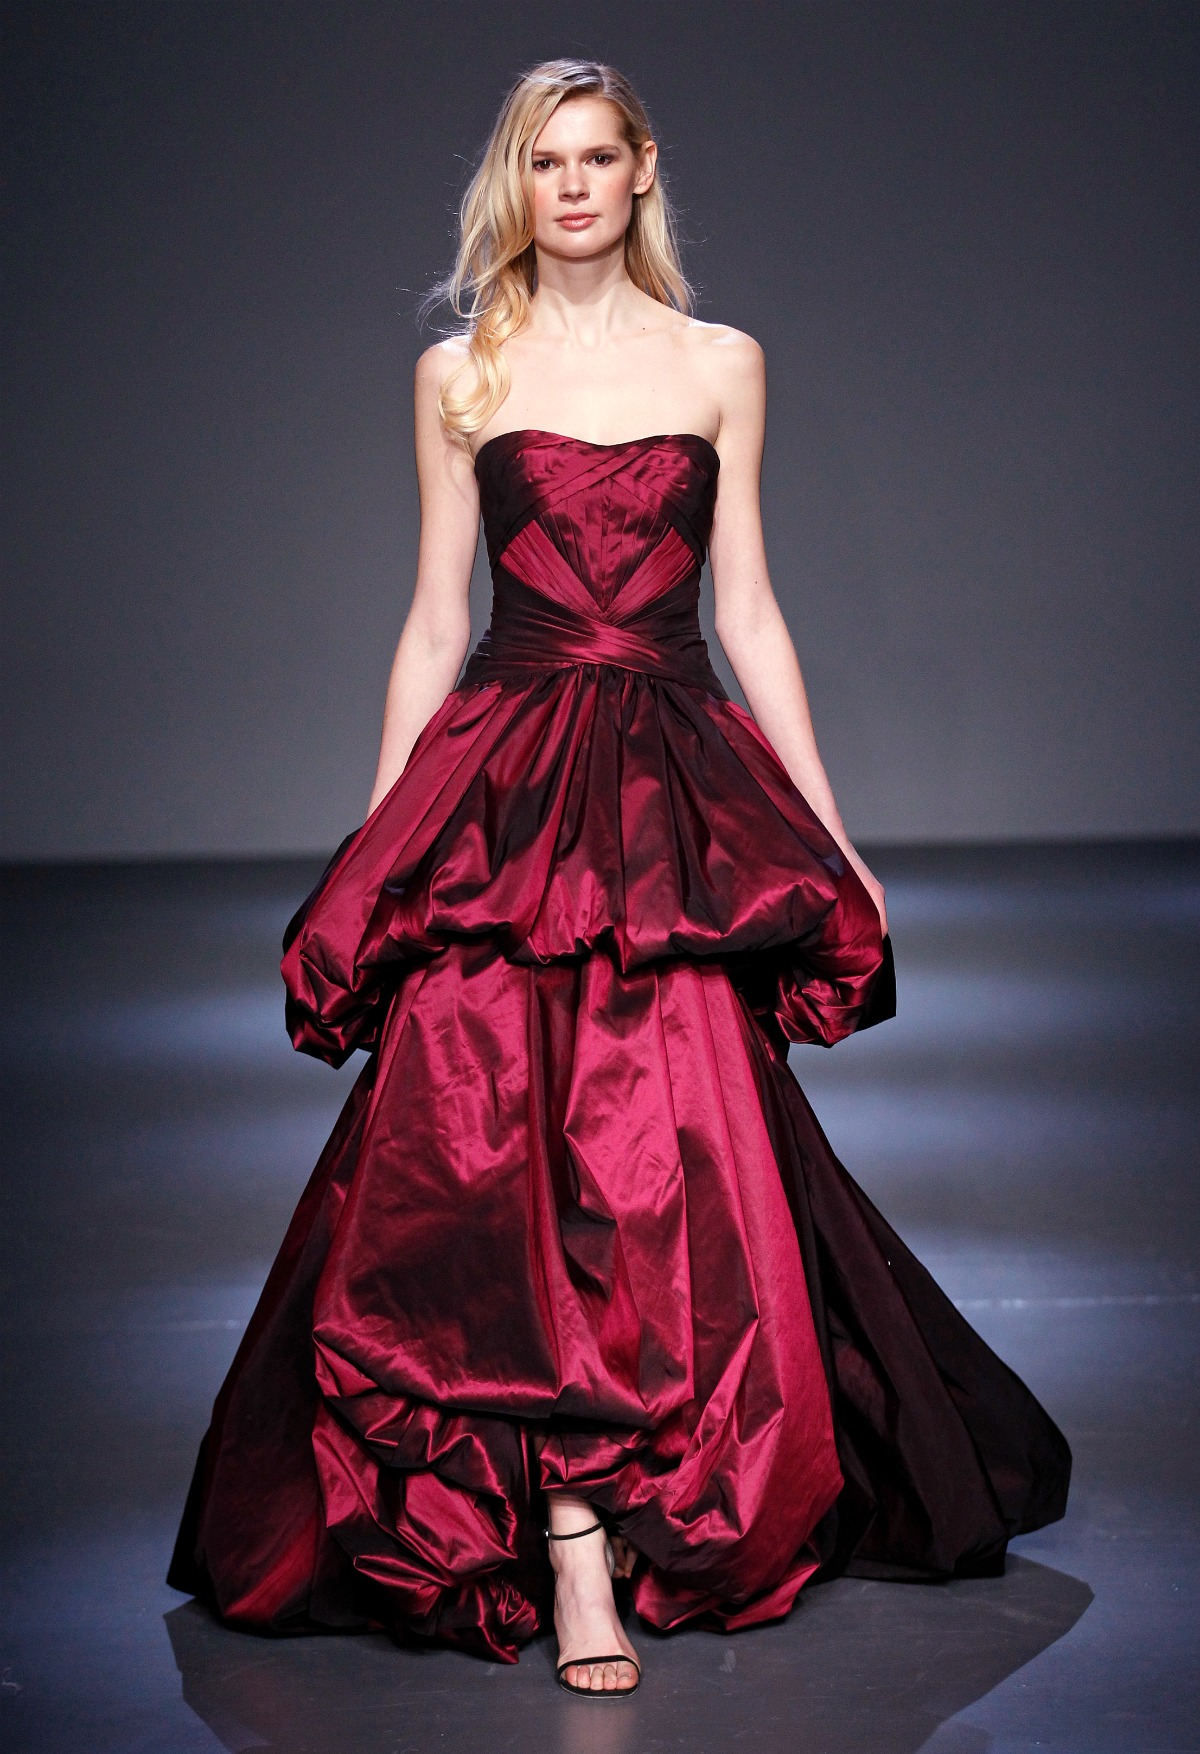 Pamella Roland Fall 2018 Runway I Burgundy Tiered Taffeta Ballgown #NYFW #WinterFashion